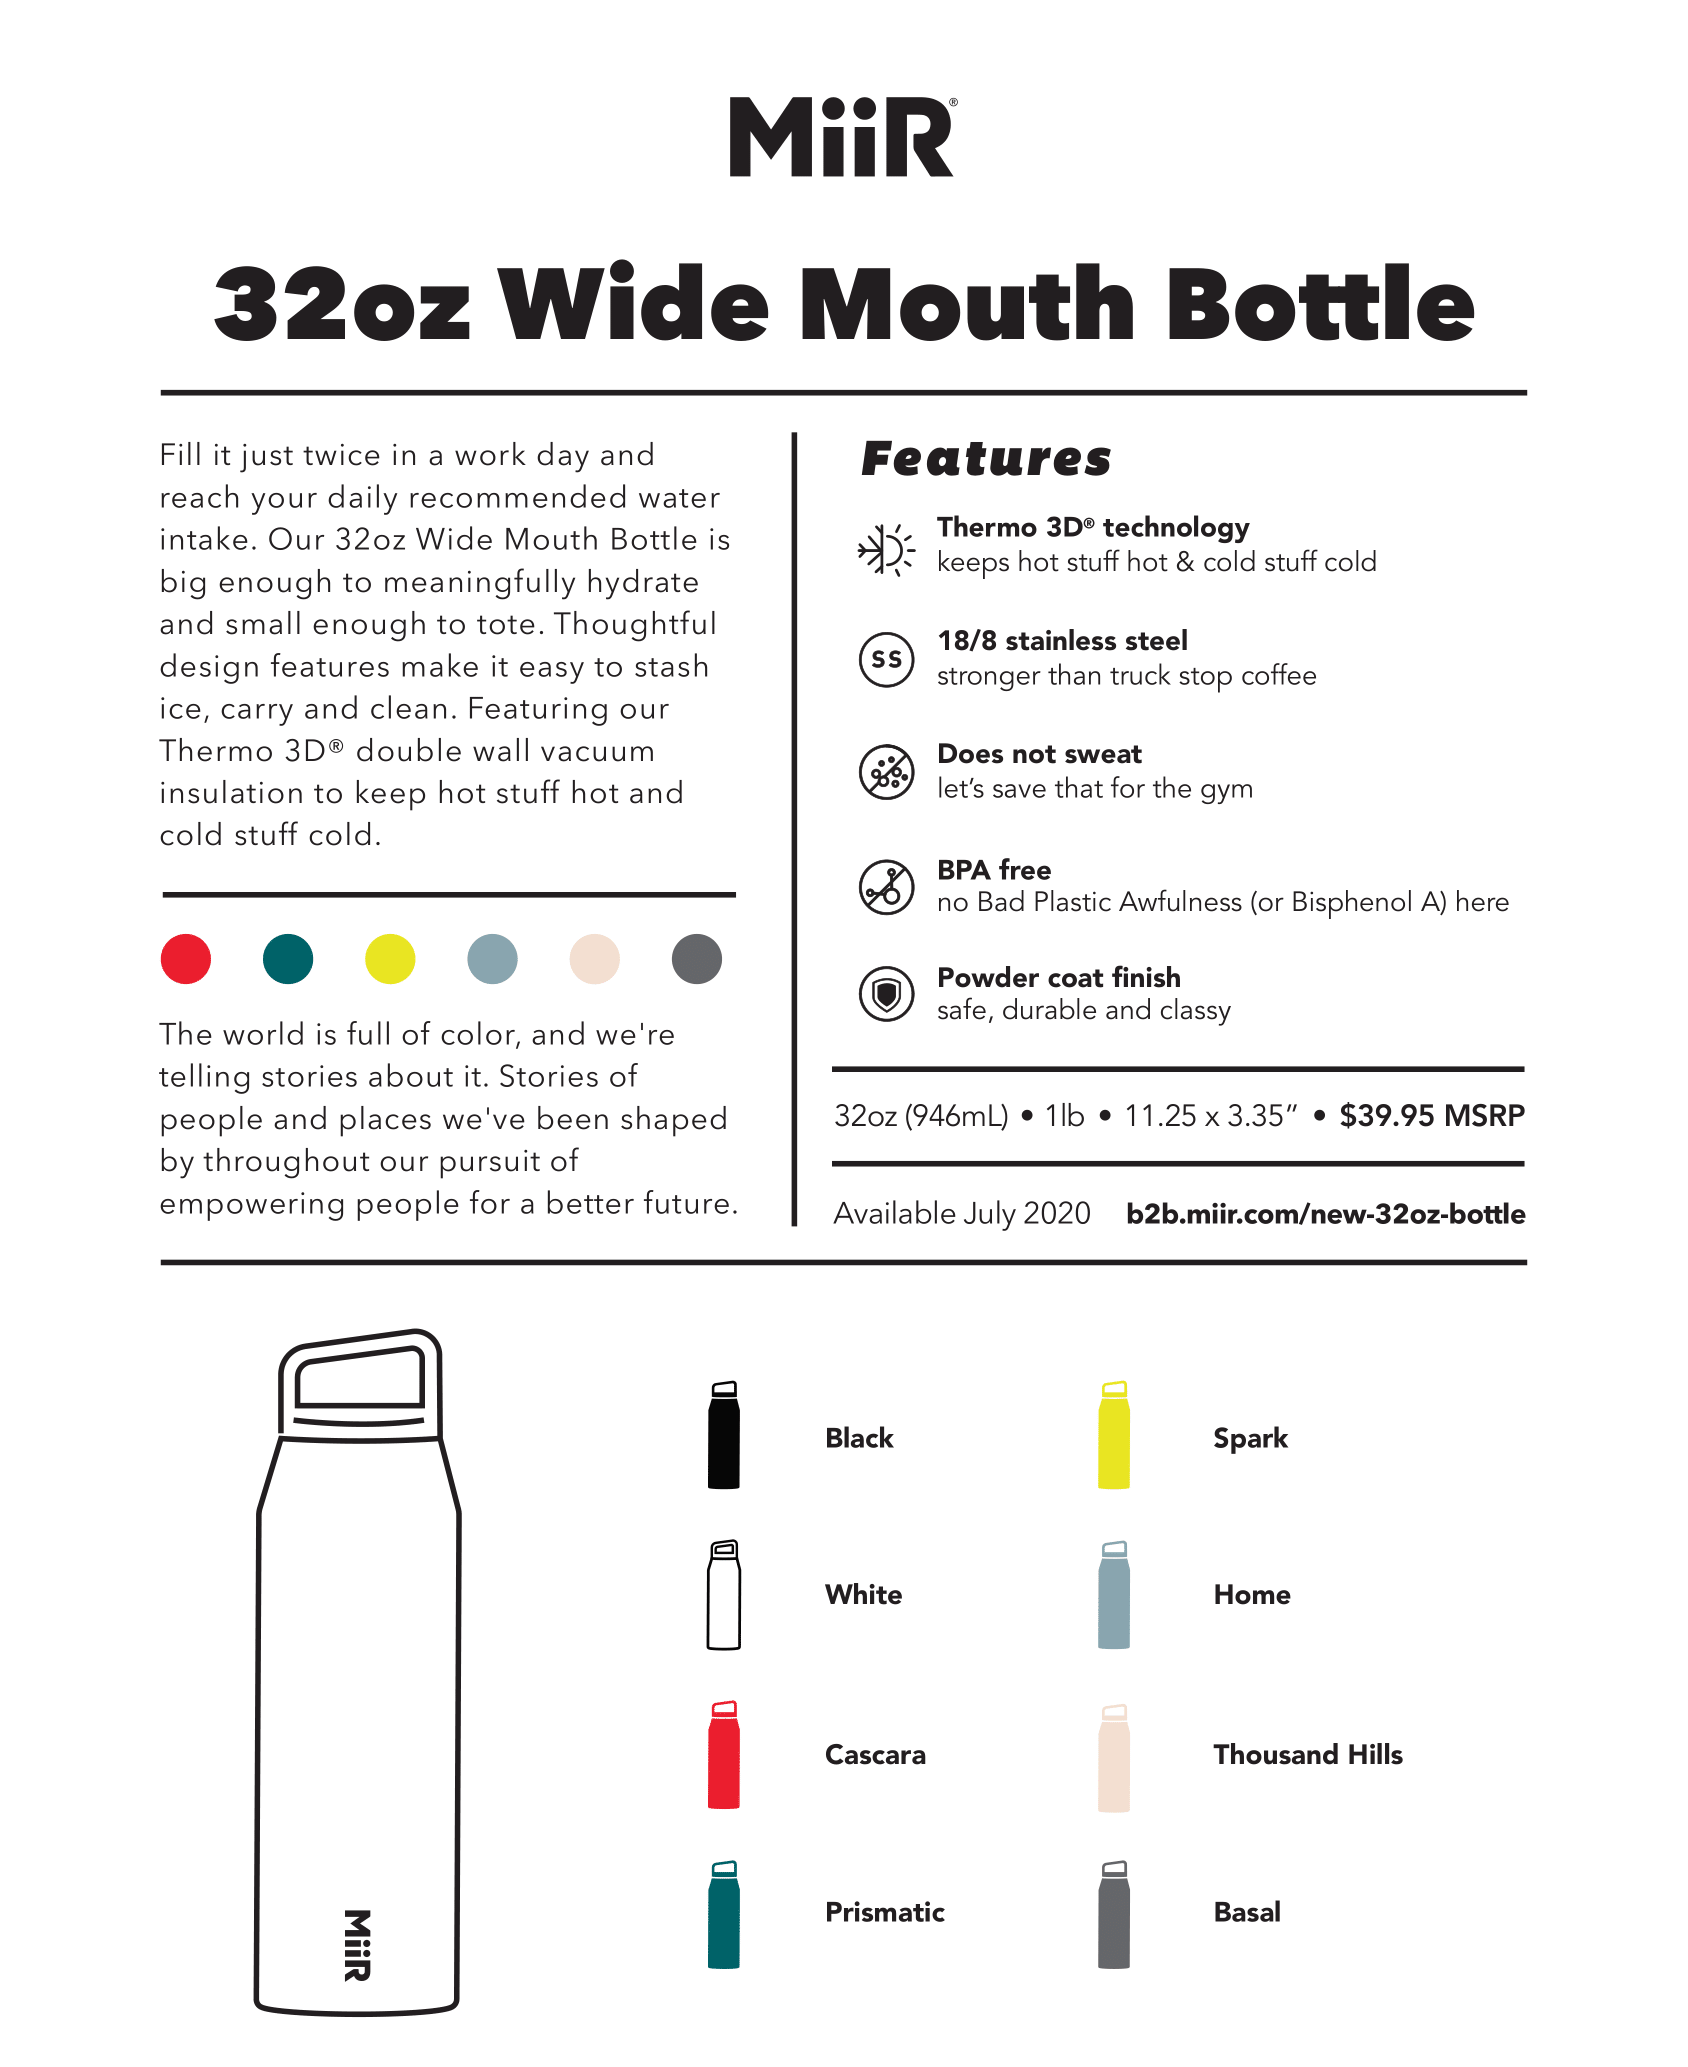 NEW 32oz Wide Mouth Bottle by MiiR